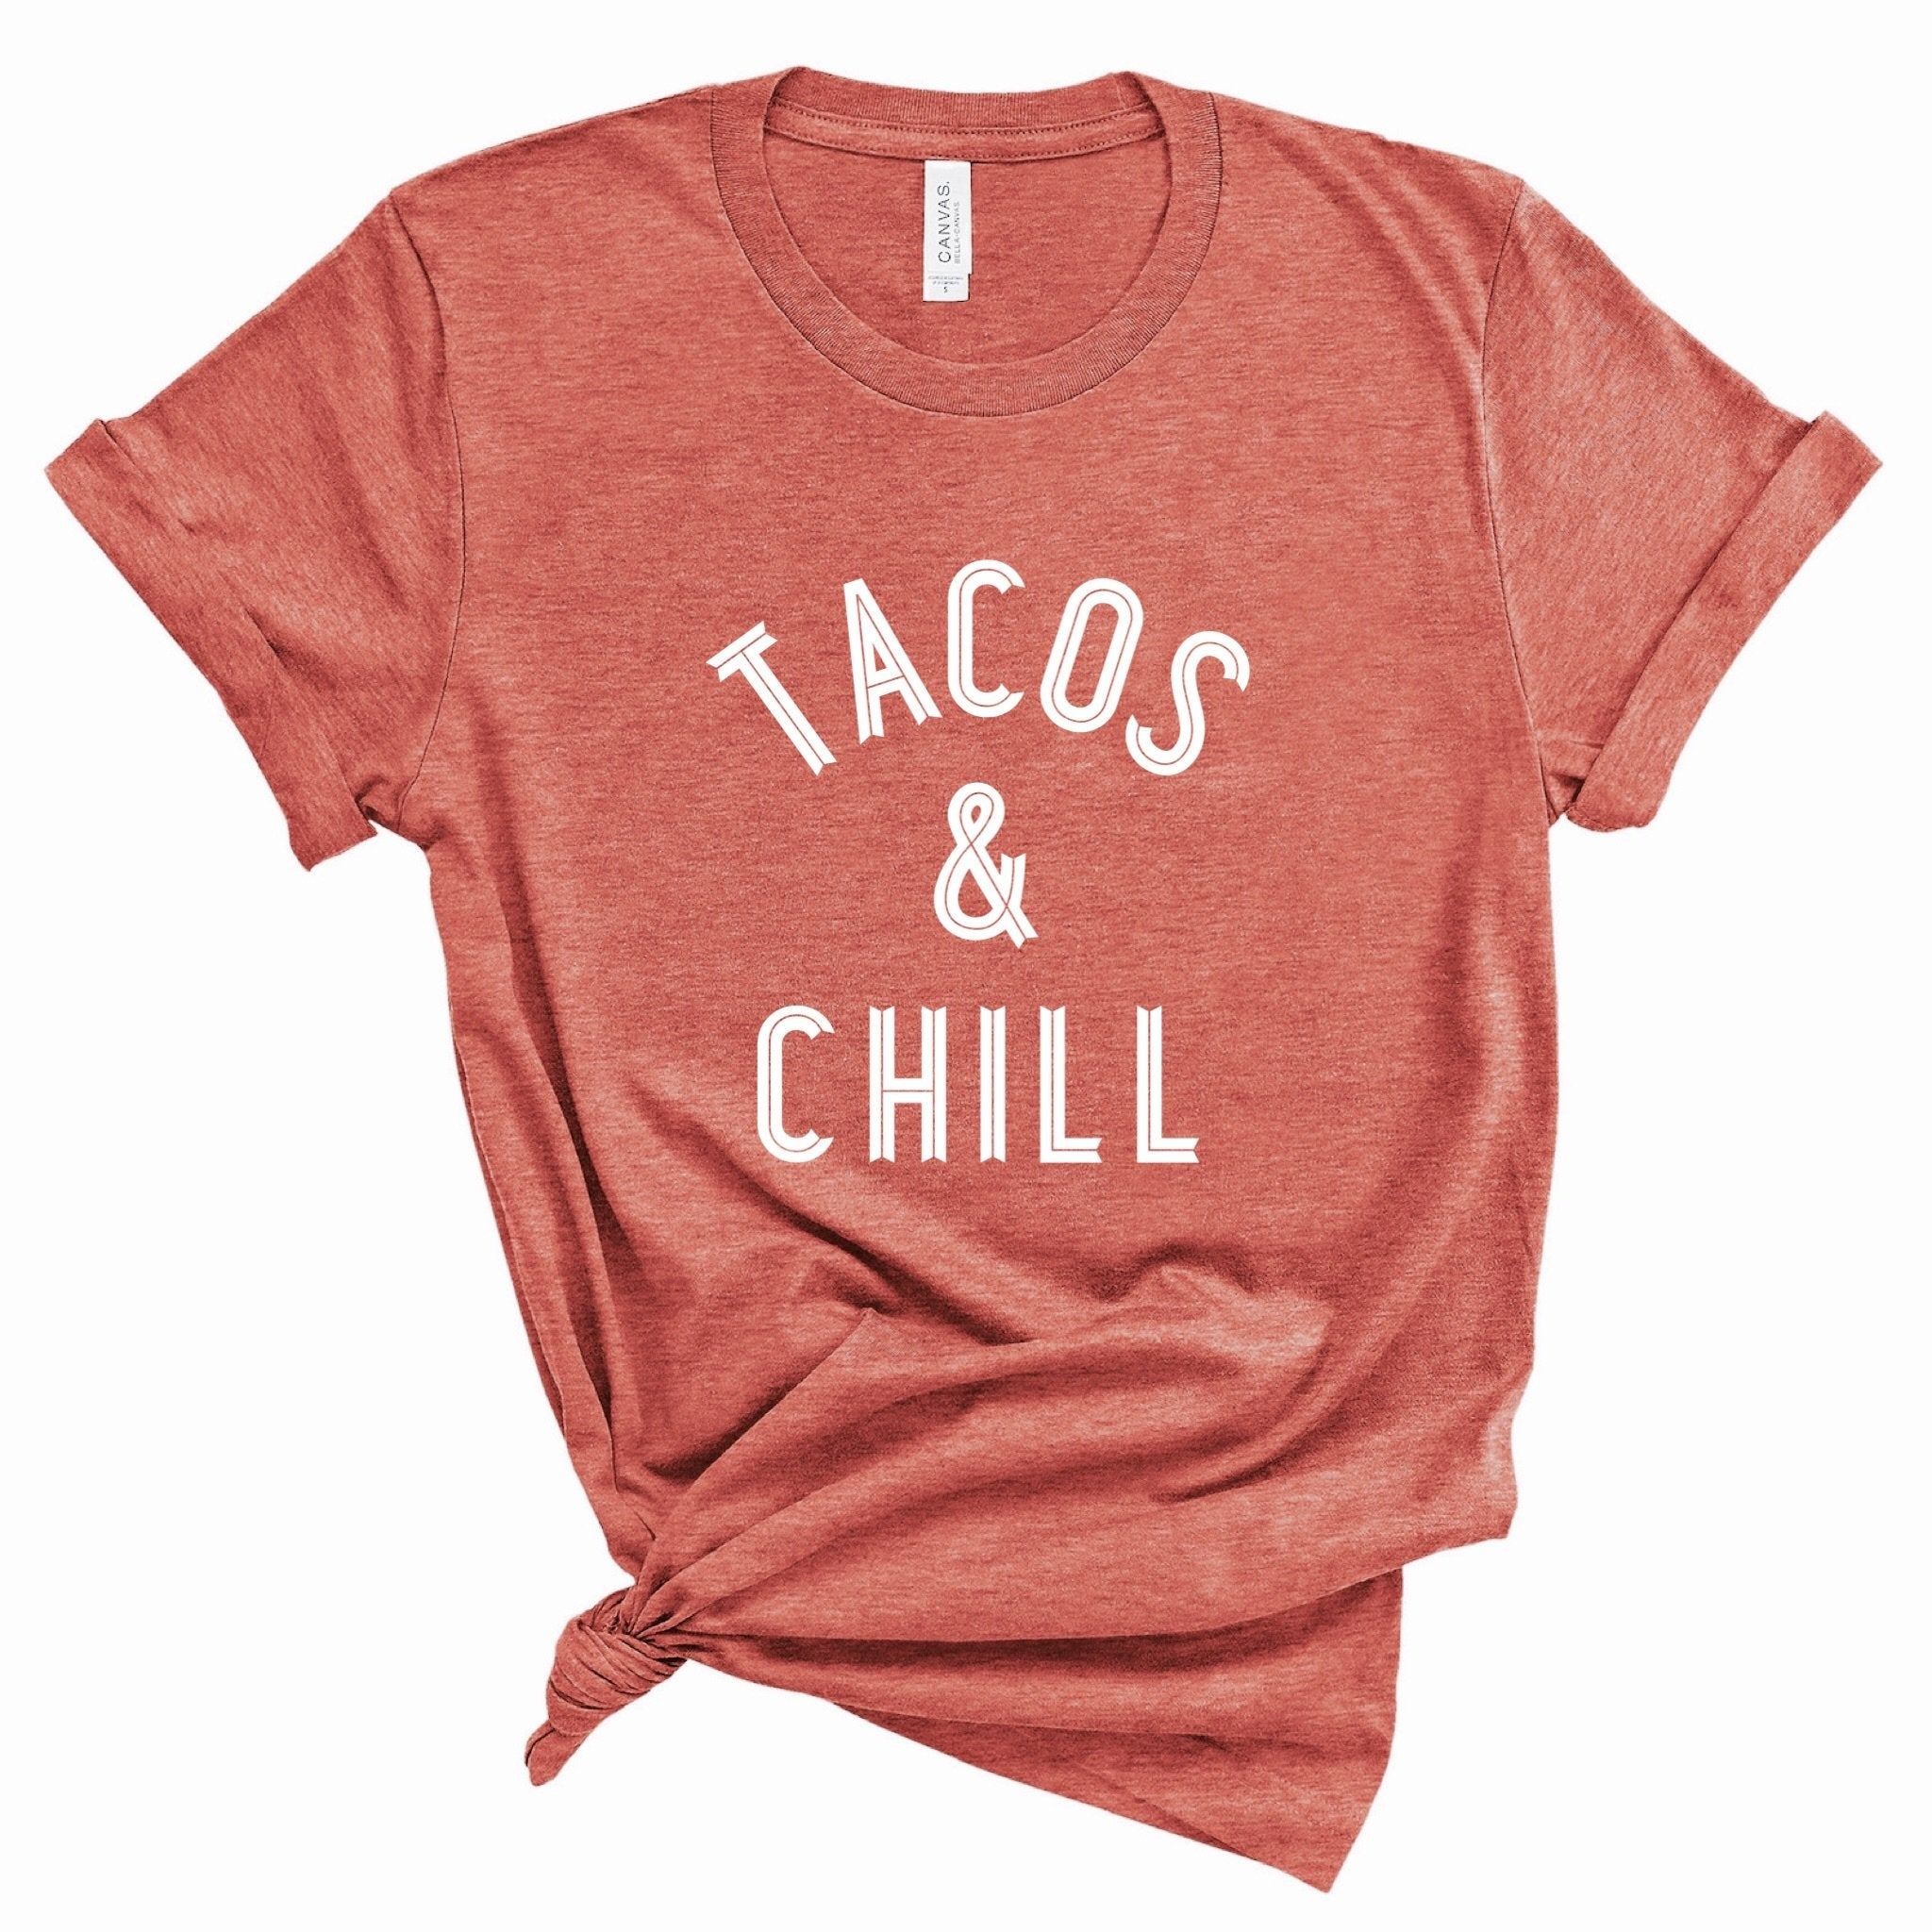 Tacos & Chill Graphic Tee